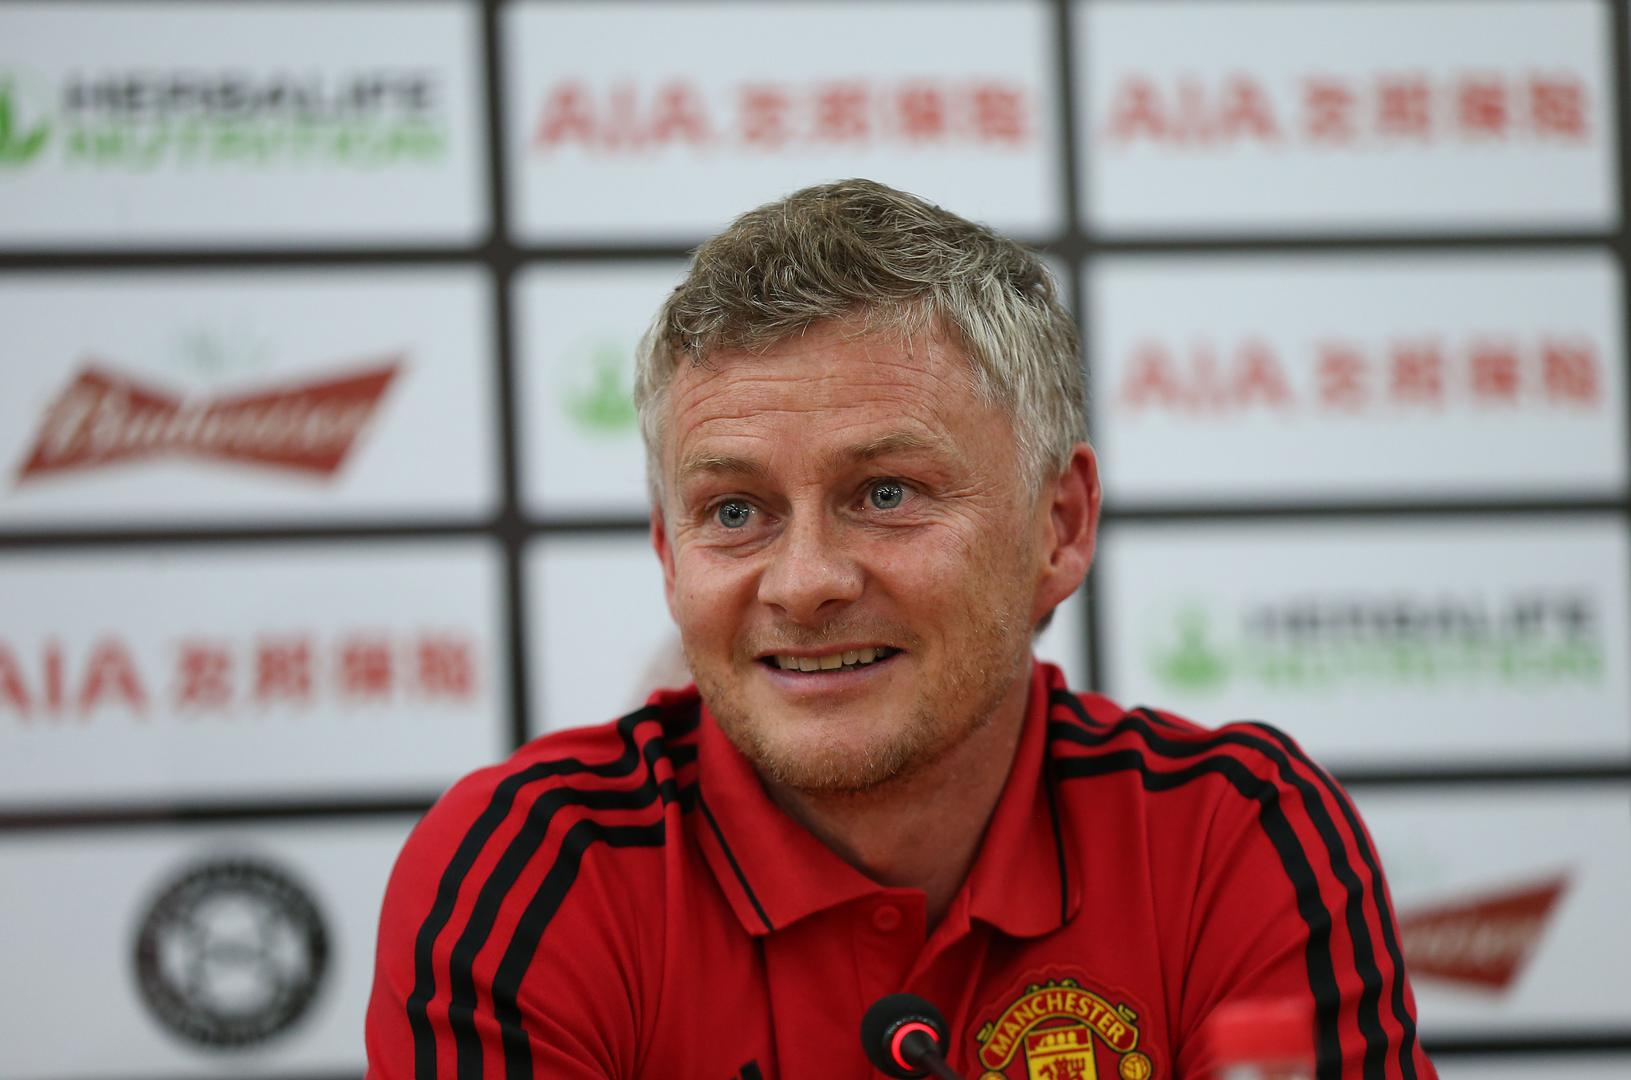 Ole Gunnar Solskjaer during a pre-match press conference in Manchester United's 2019 pre-season.